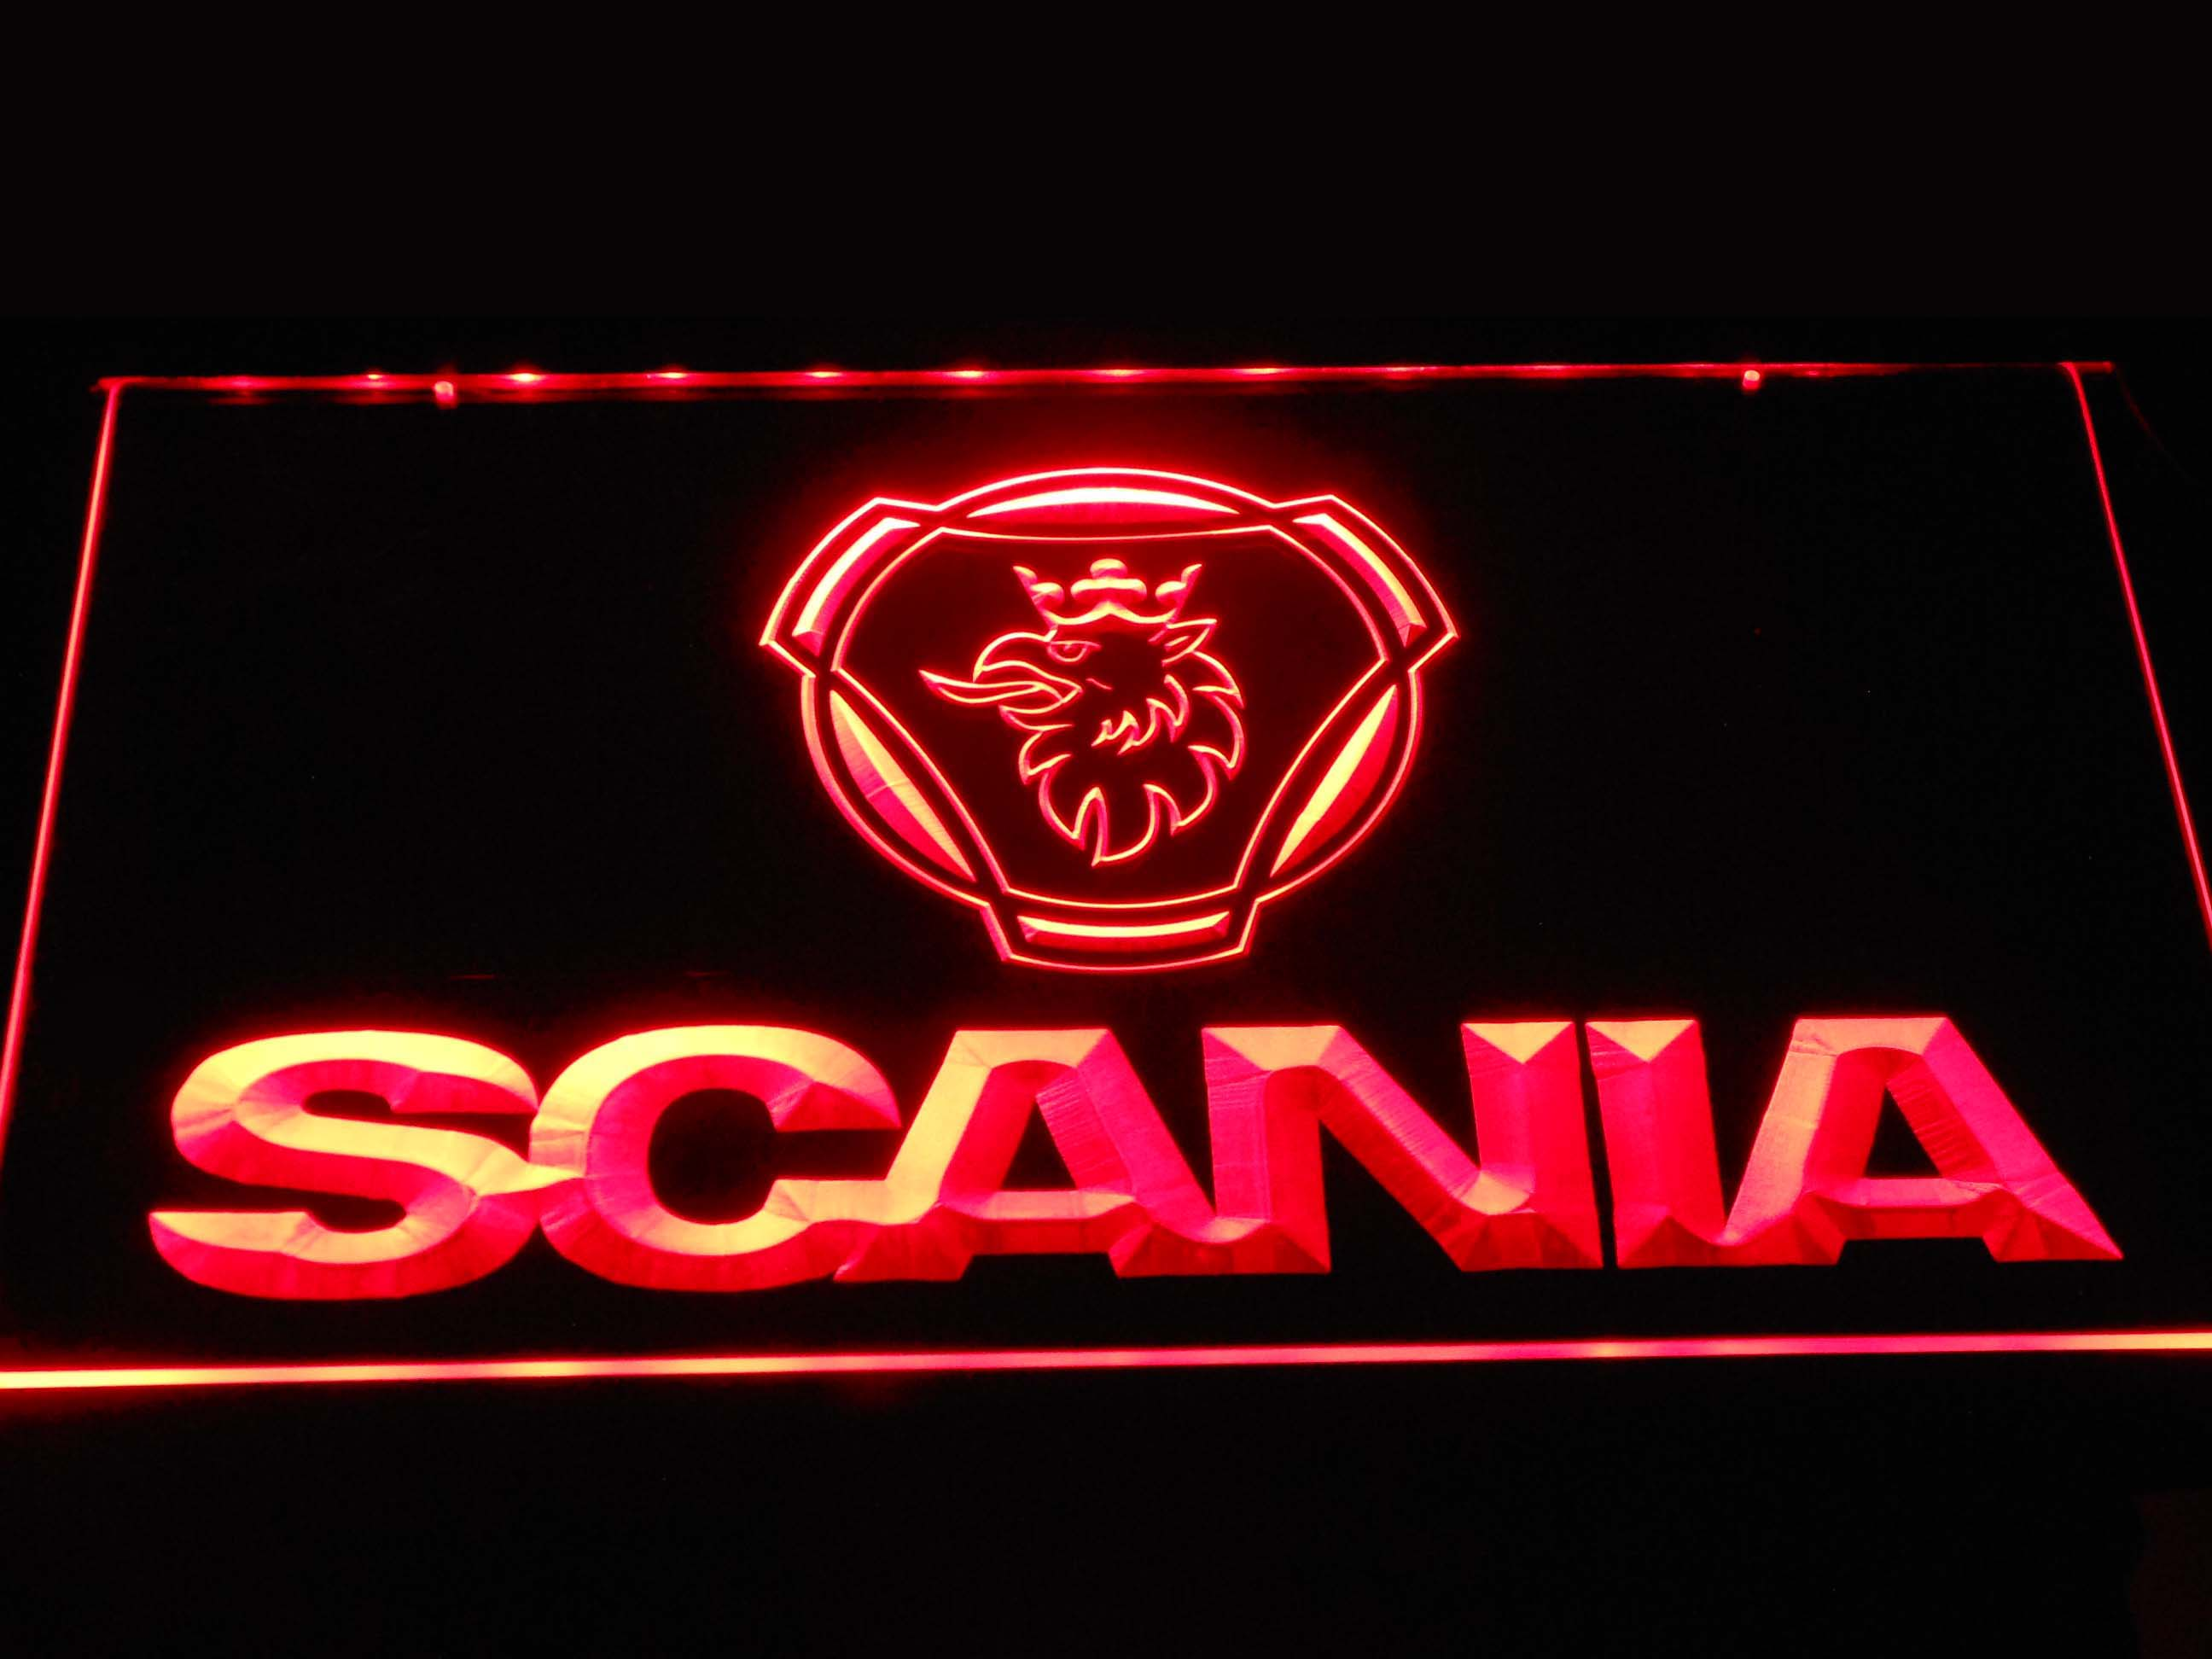 d393 Scania Car Truck LED Neon Sign with On/Off Switch 7 Colors to choose